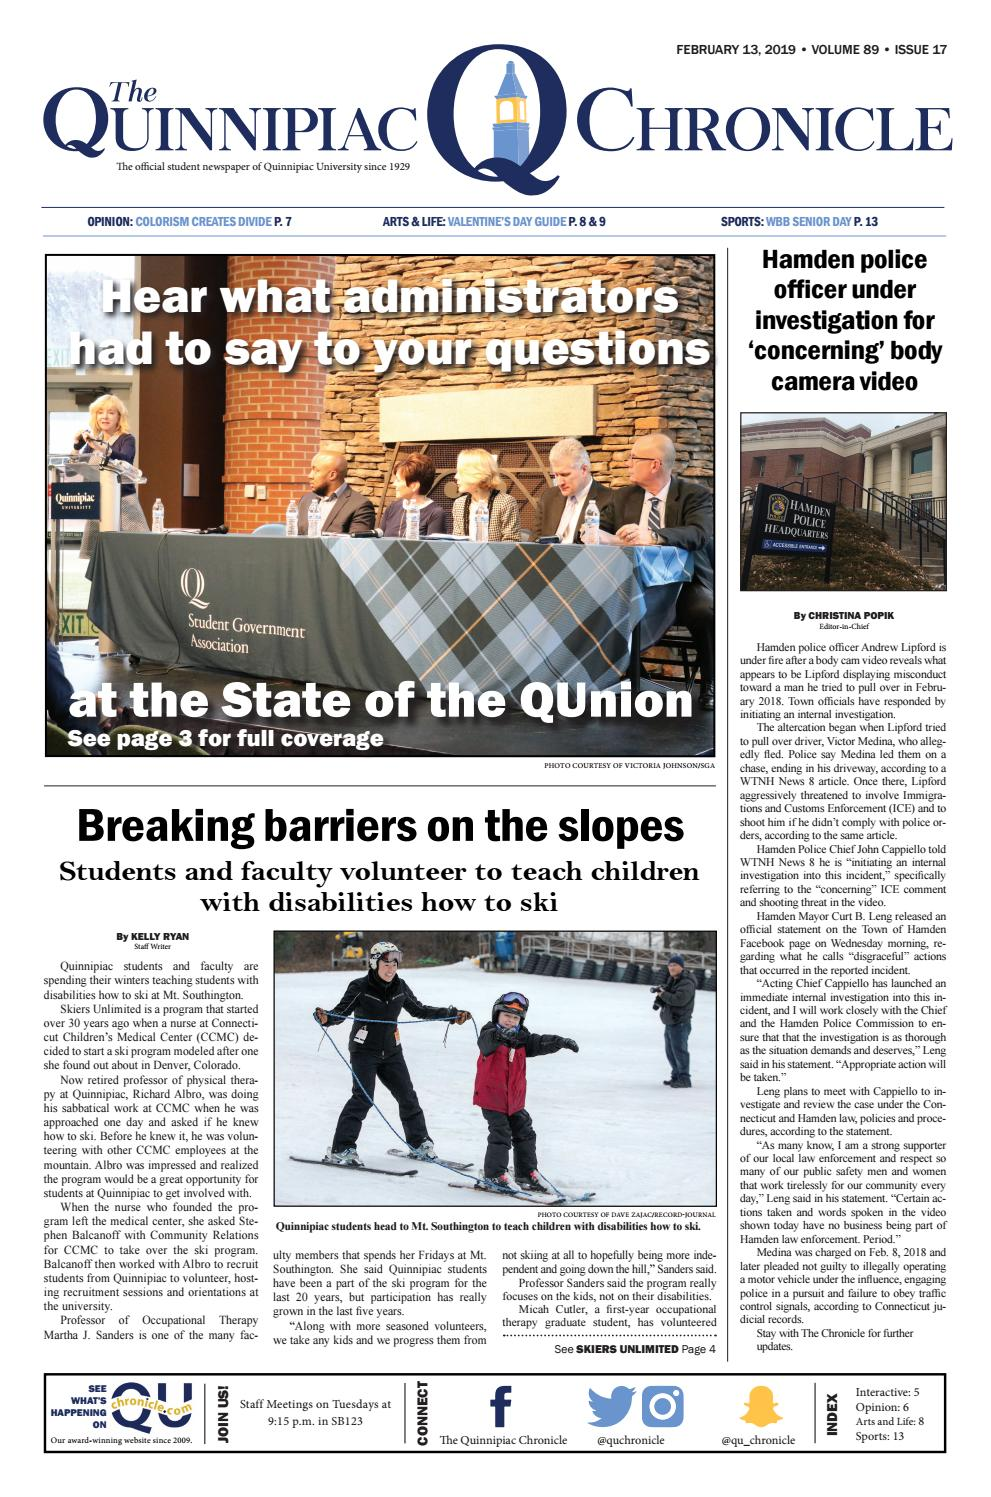 The Quinnipiac Chronicle, Issue 17 Volume 89 by The